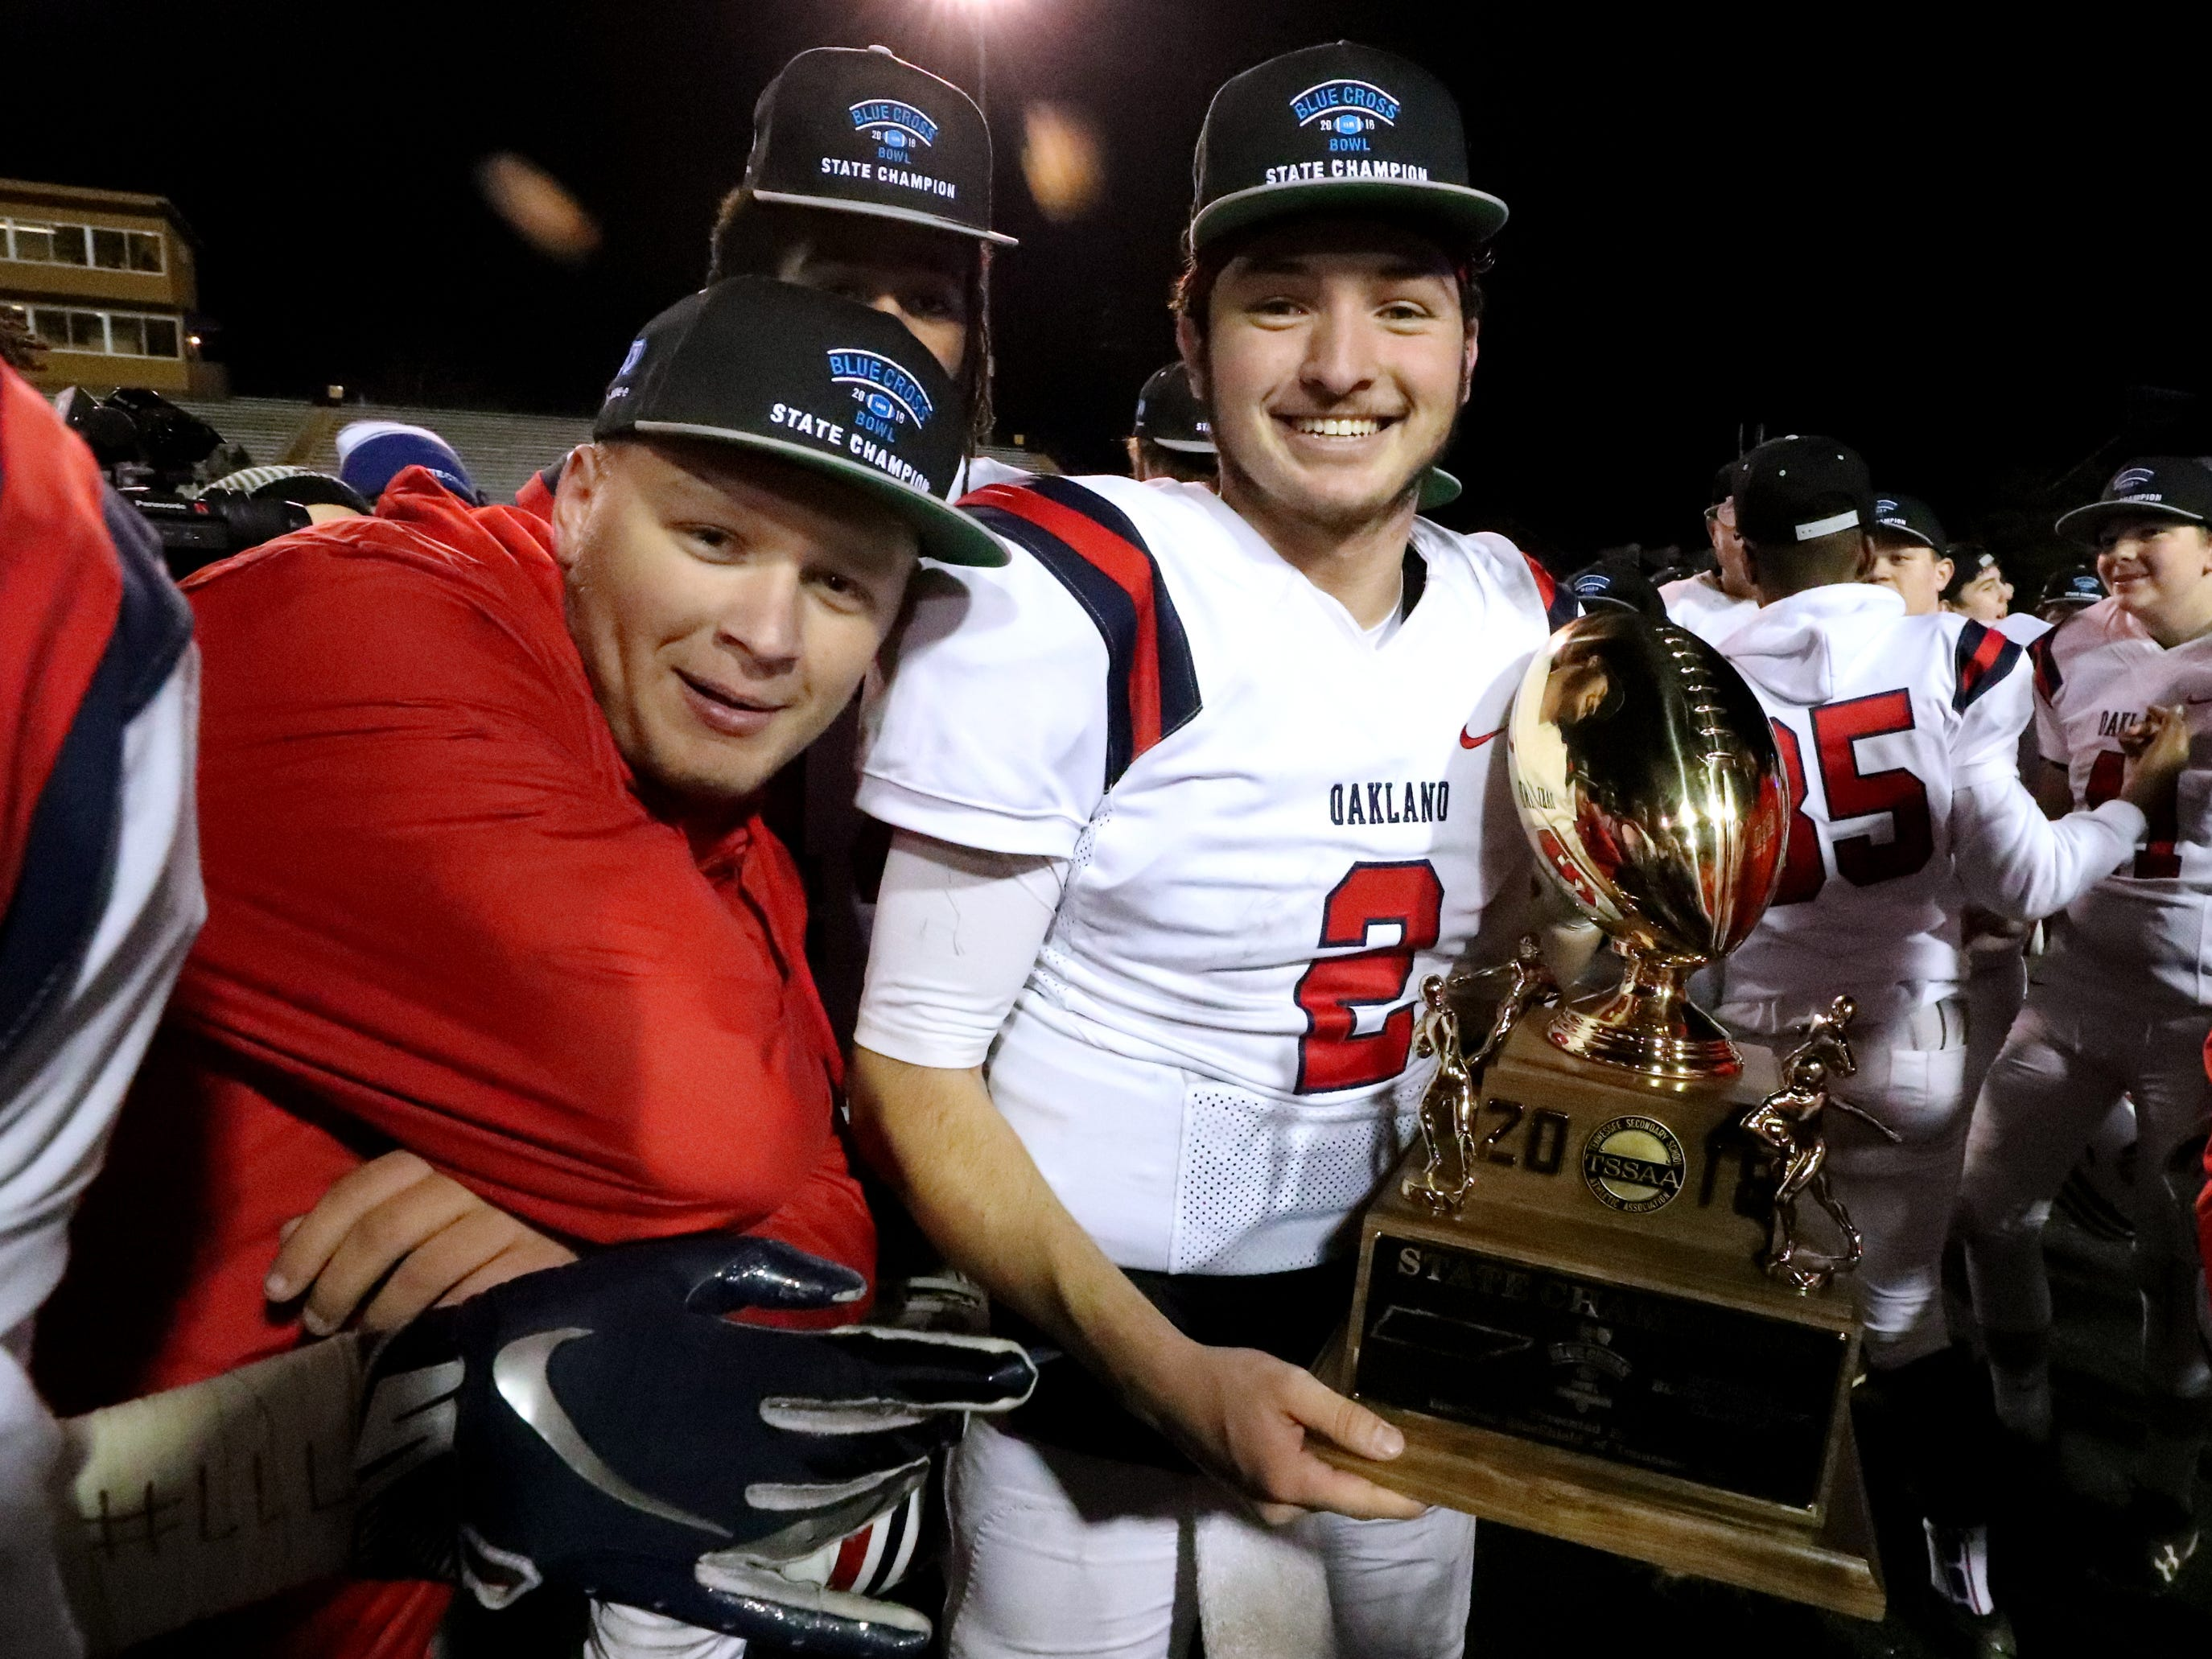 Oakland's manager Avery Watson, left stands next to Oakland's quarterback Brevin Linnell (2) as Linnell holds the state championship trophy after defeating Whitehaven 37-0 during the 6A State Championship BlueCross Bowl game on Thursday, Nov. 29 2018.